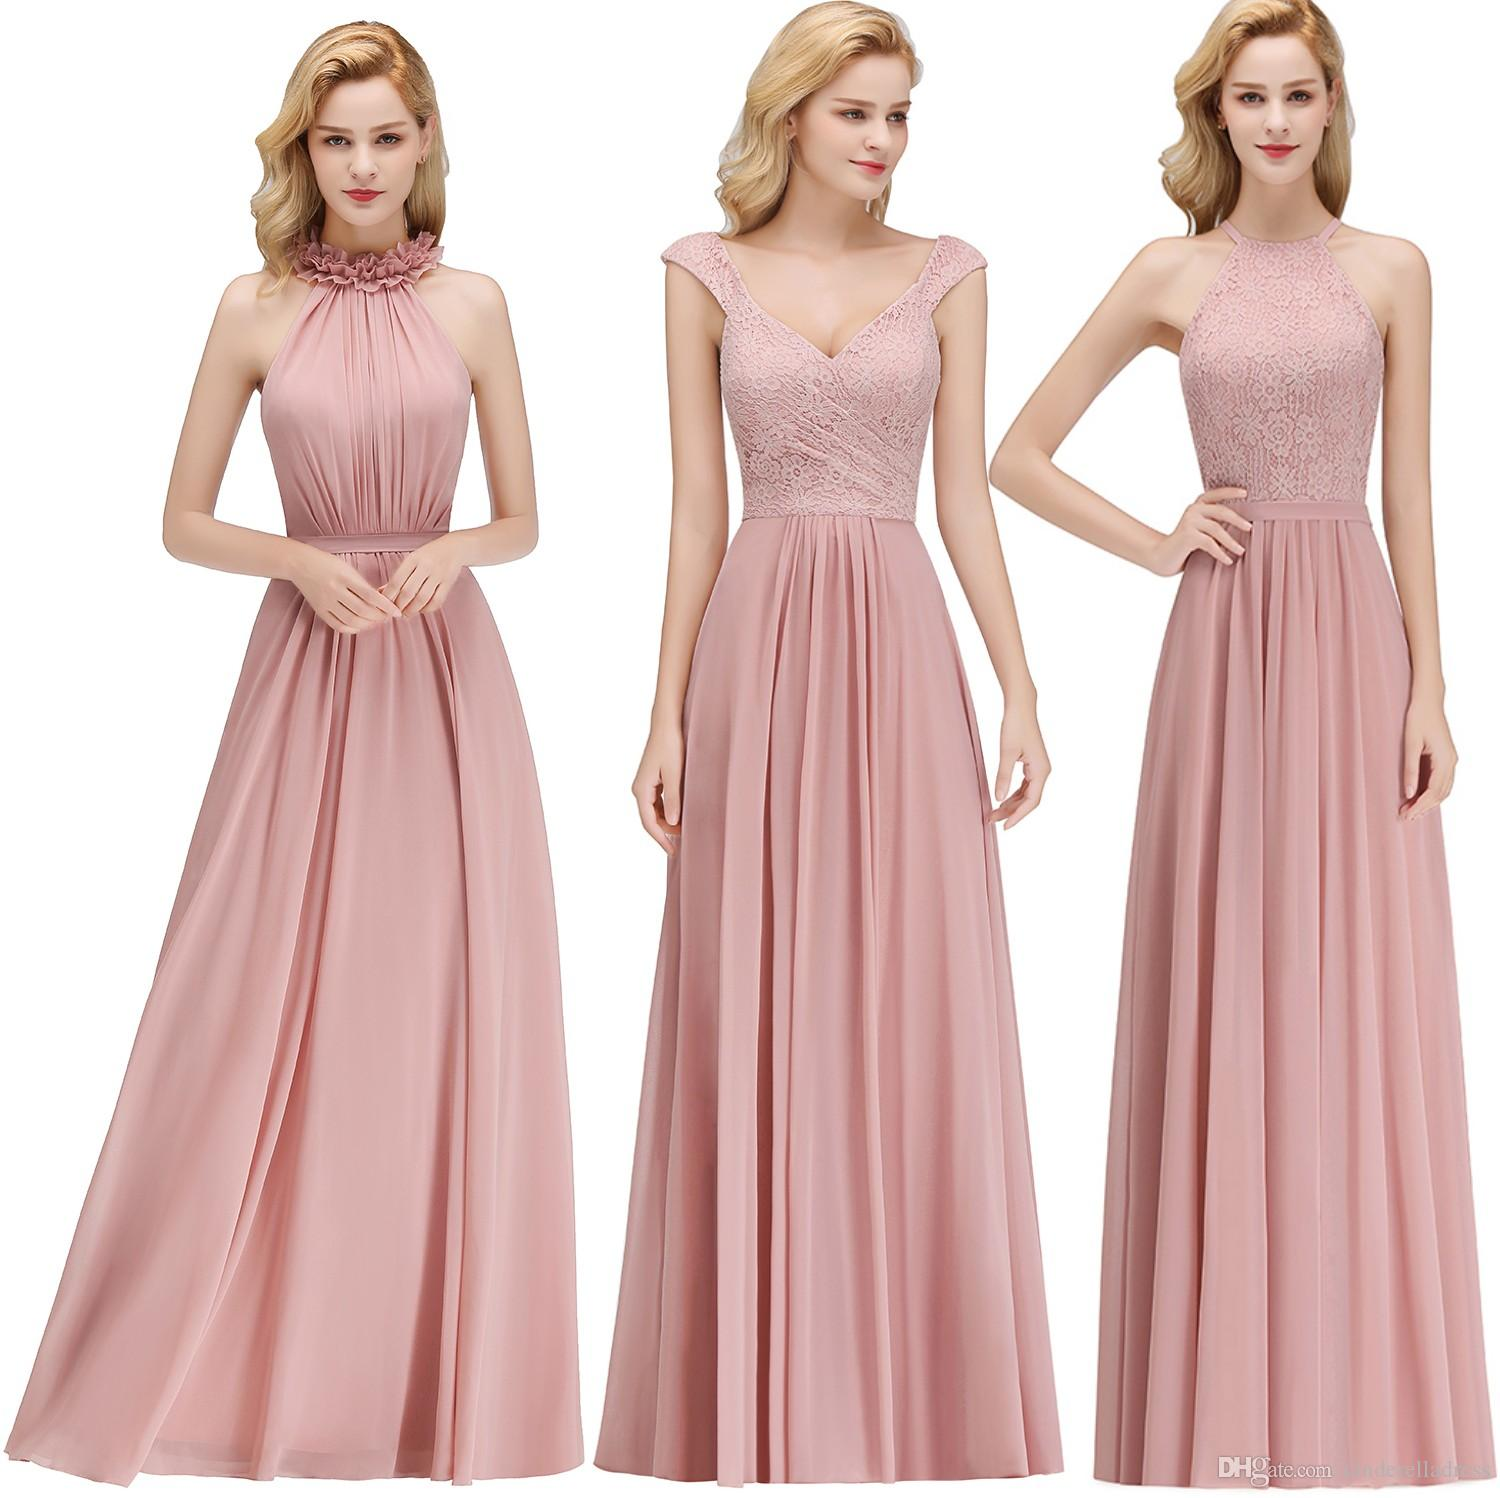 street price top-rated real professional 2019 Cheap Lace Chiffon Dusty Rose Bridesmaid Dresses Halter Neck Sheath  Beach Prom Gowns For Wedding Guest Evening Dress BM0057 Girl Bridesmaid ...